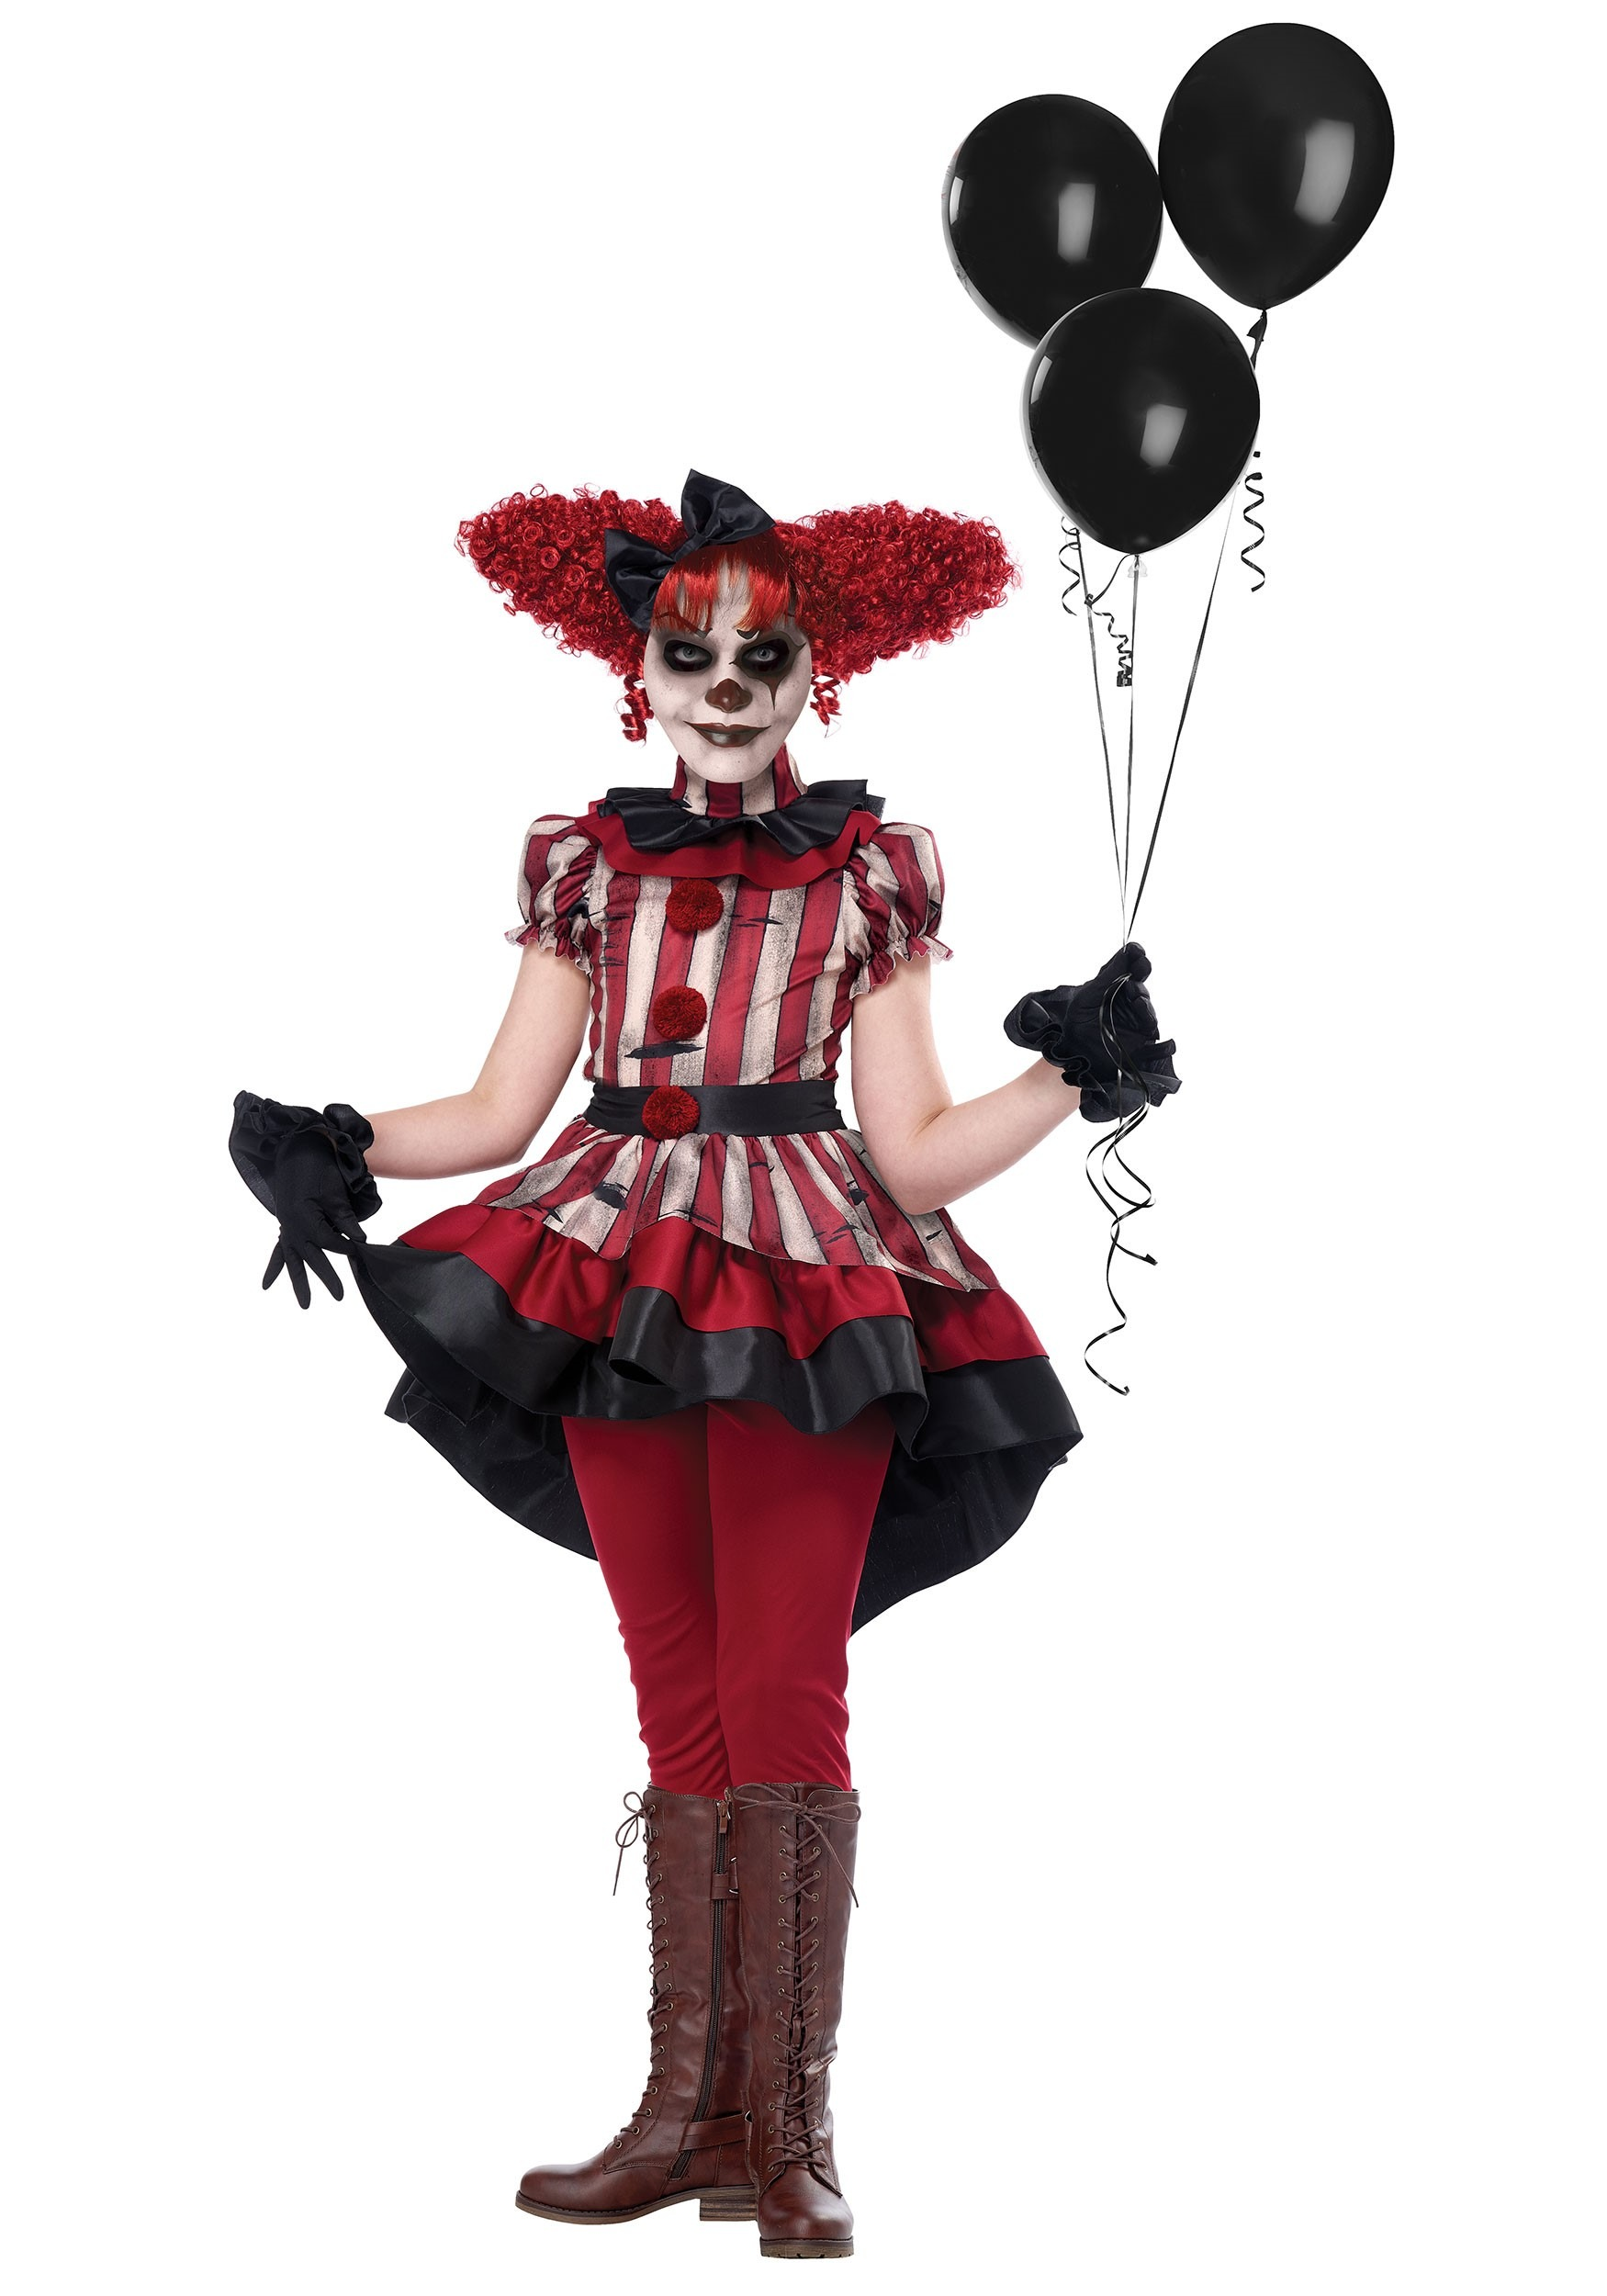 Clown Halloween Costumes For Girls.Wicked Clown Costume For Girls